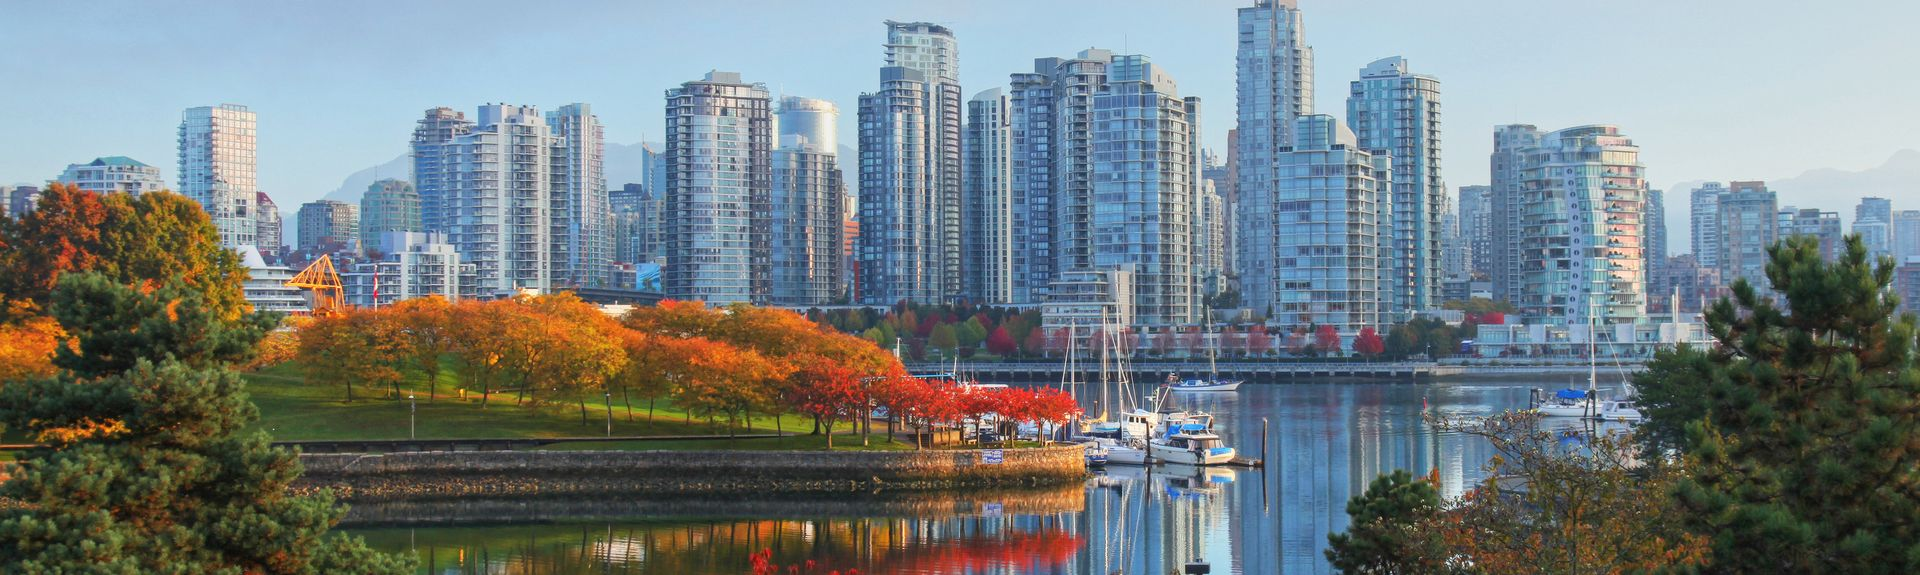 Coal Harbour, Vancouver, British Columbia, Canadá